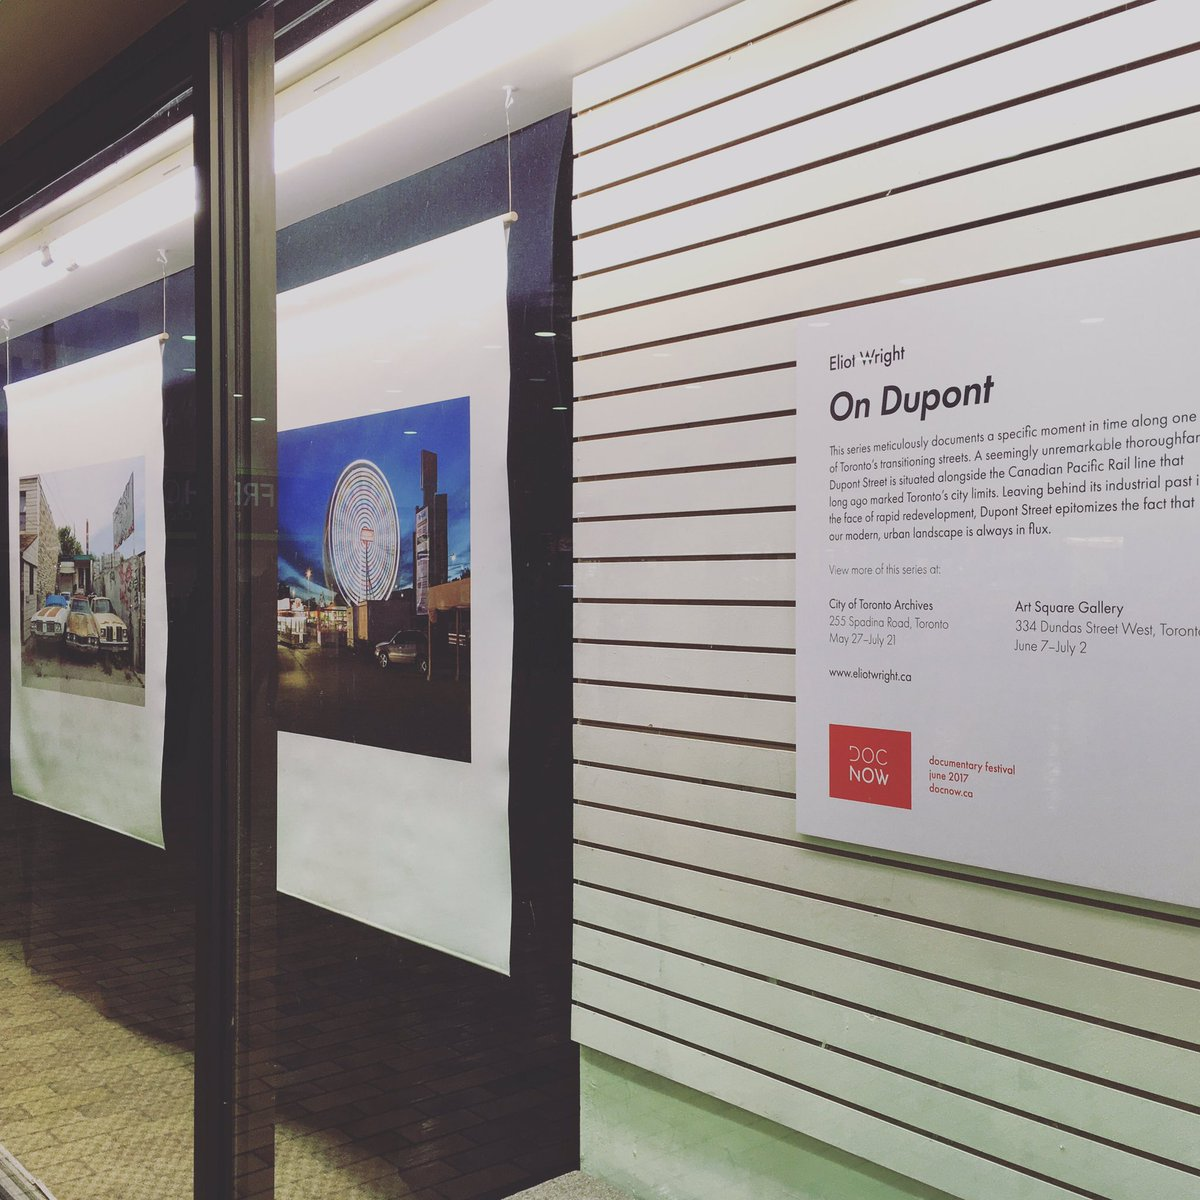 Looking for a unique #shopping experience? Drop by Galleria Mall and check out my photos while your at it! @ContactPhoto #dupont #toronto <br>http://pic.twitter.com/nGtFeWdd6T